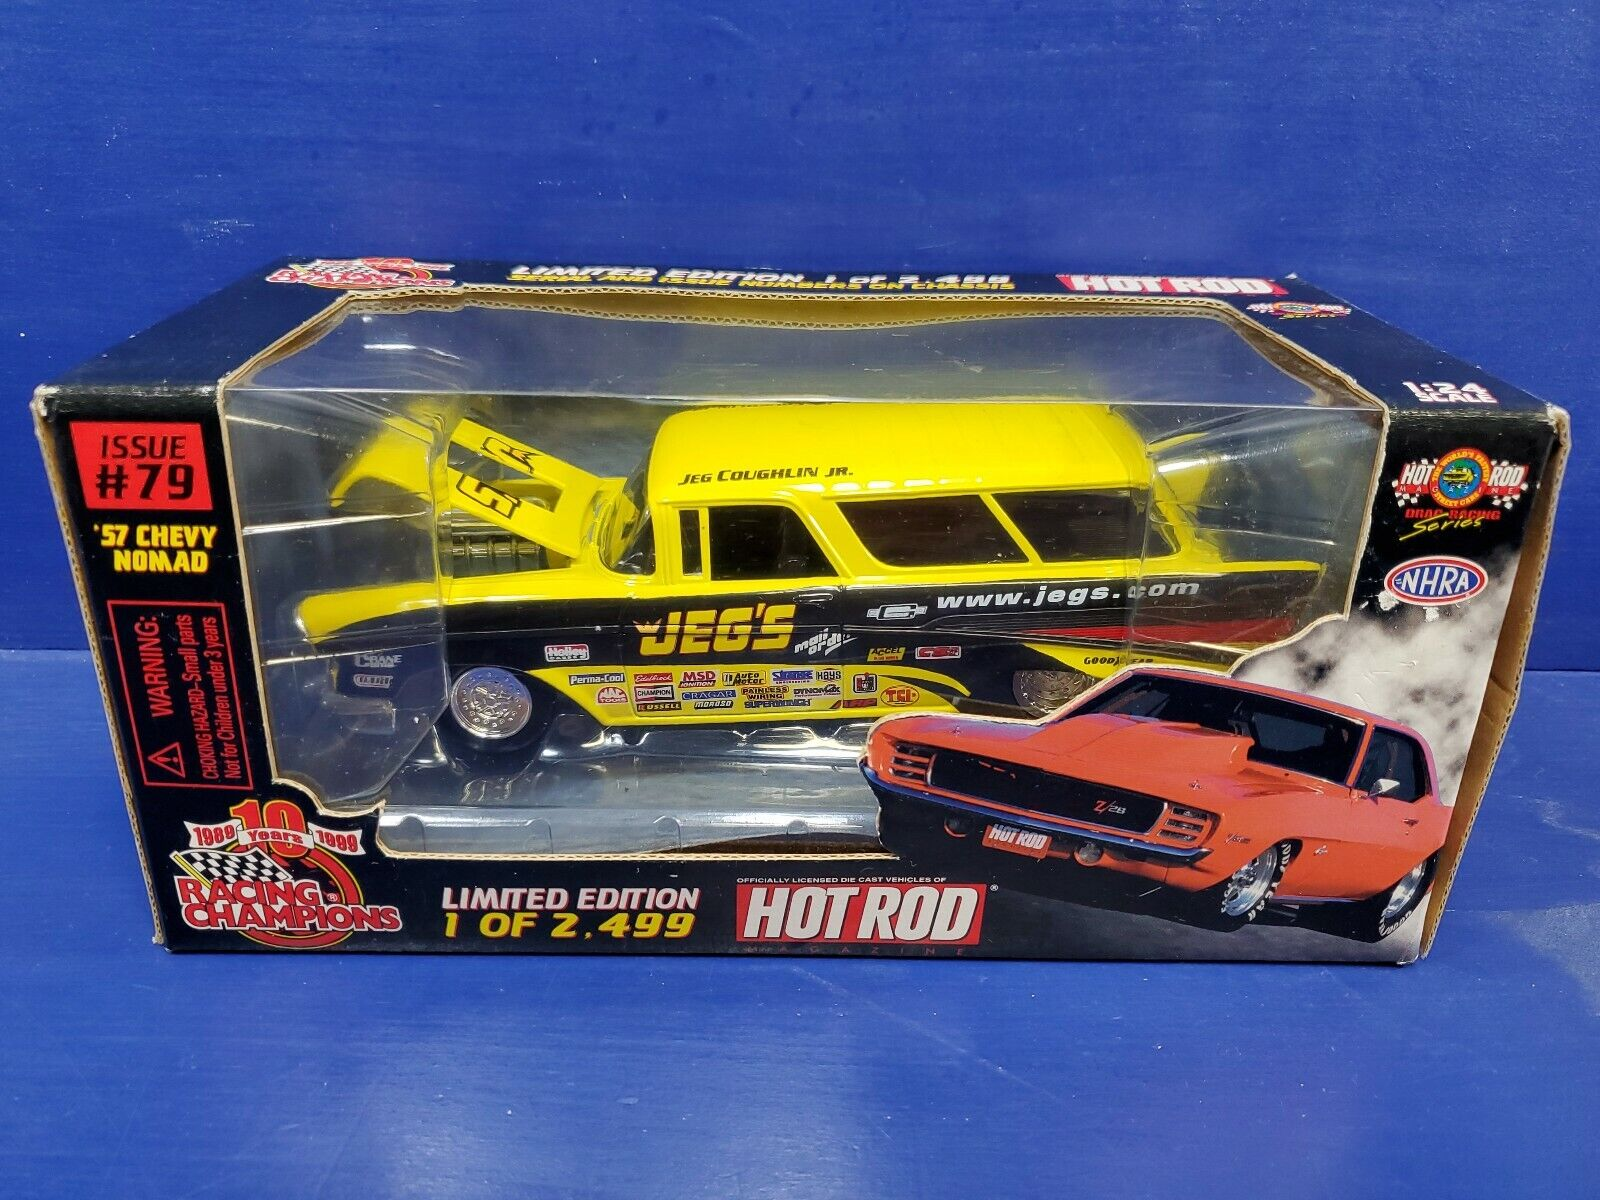 prendi l'ultimo 1 1 1 24 Die Cast Racing Champions Caliente Rod Magazine Issue  79 1957 Chevy Nomad Jeg's  Sconto del 70%